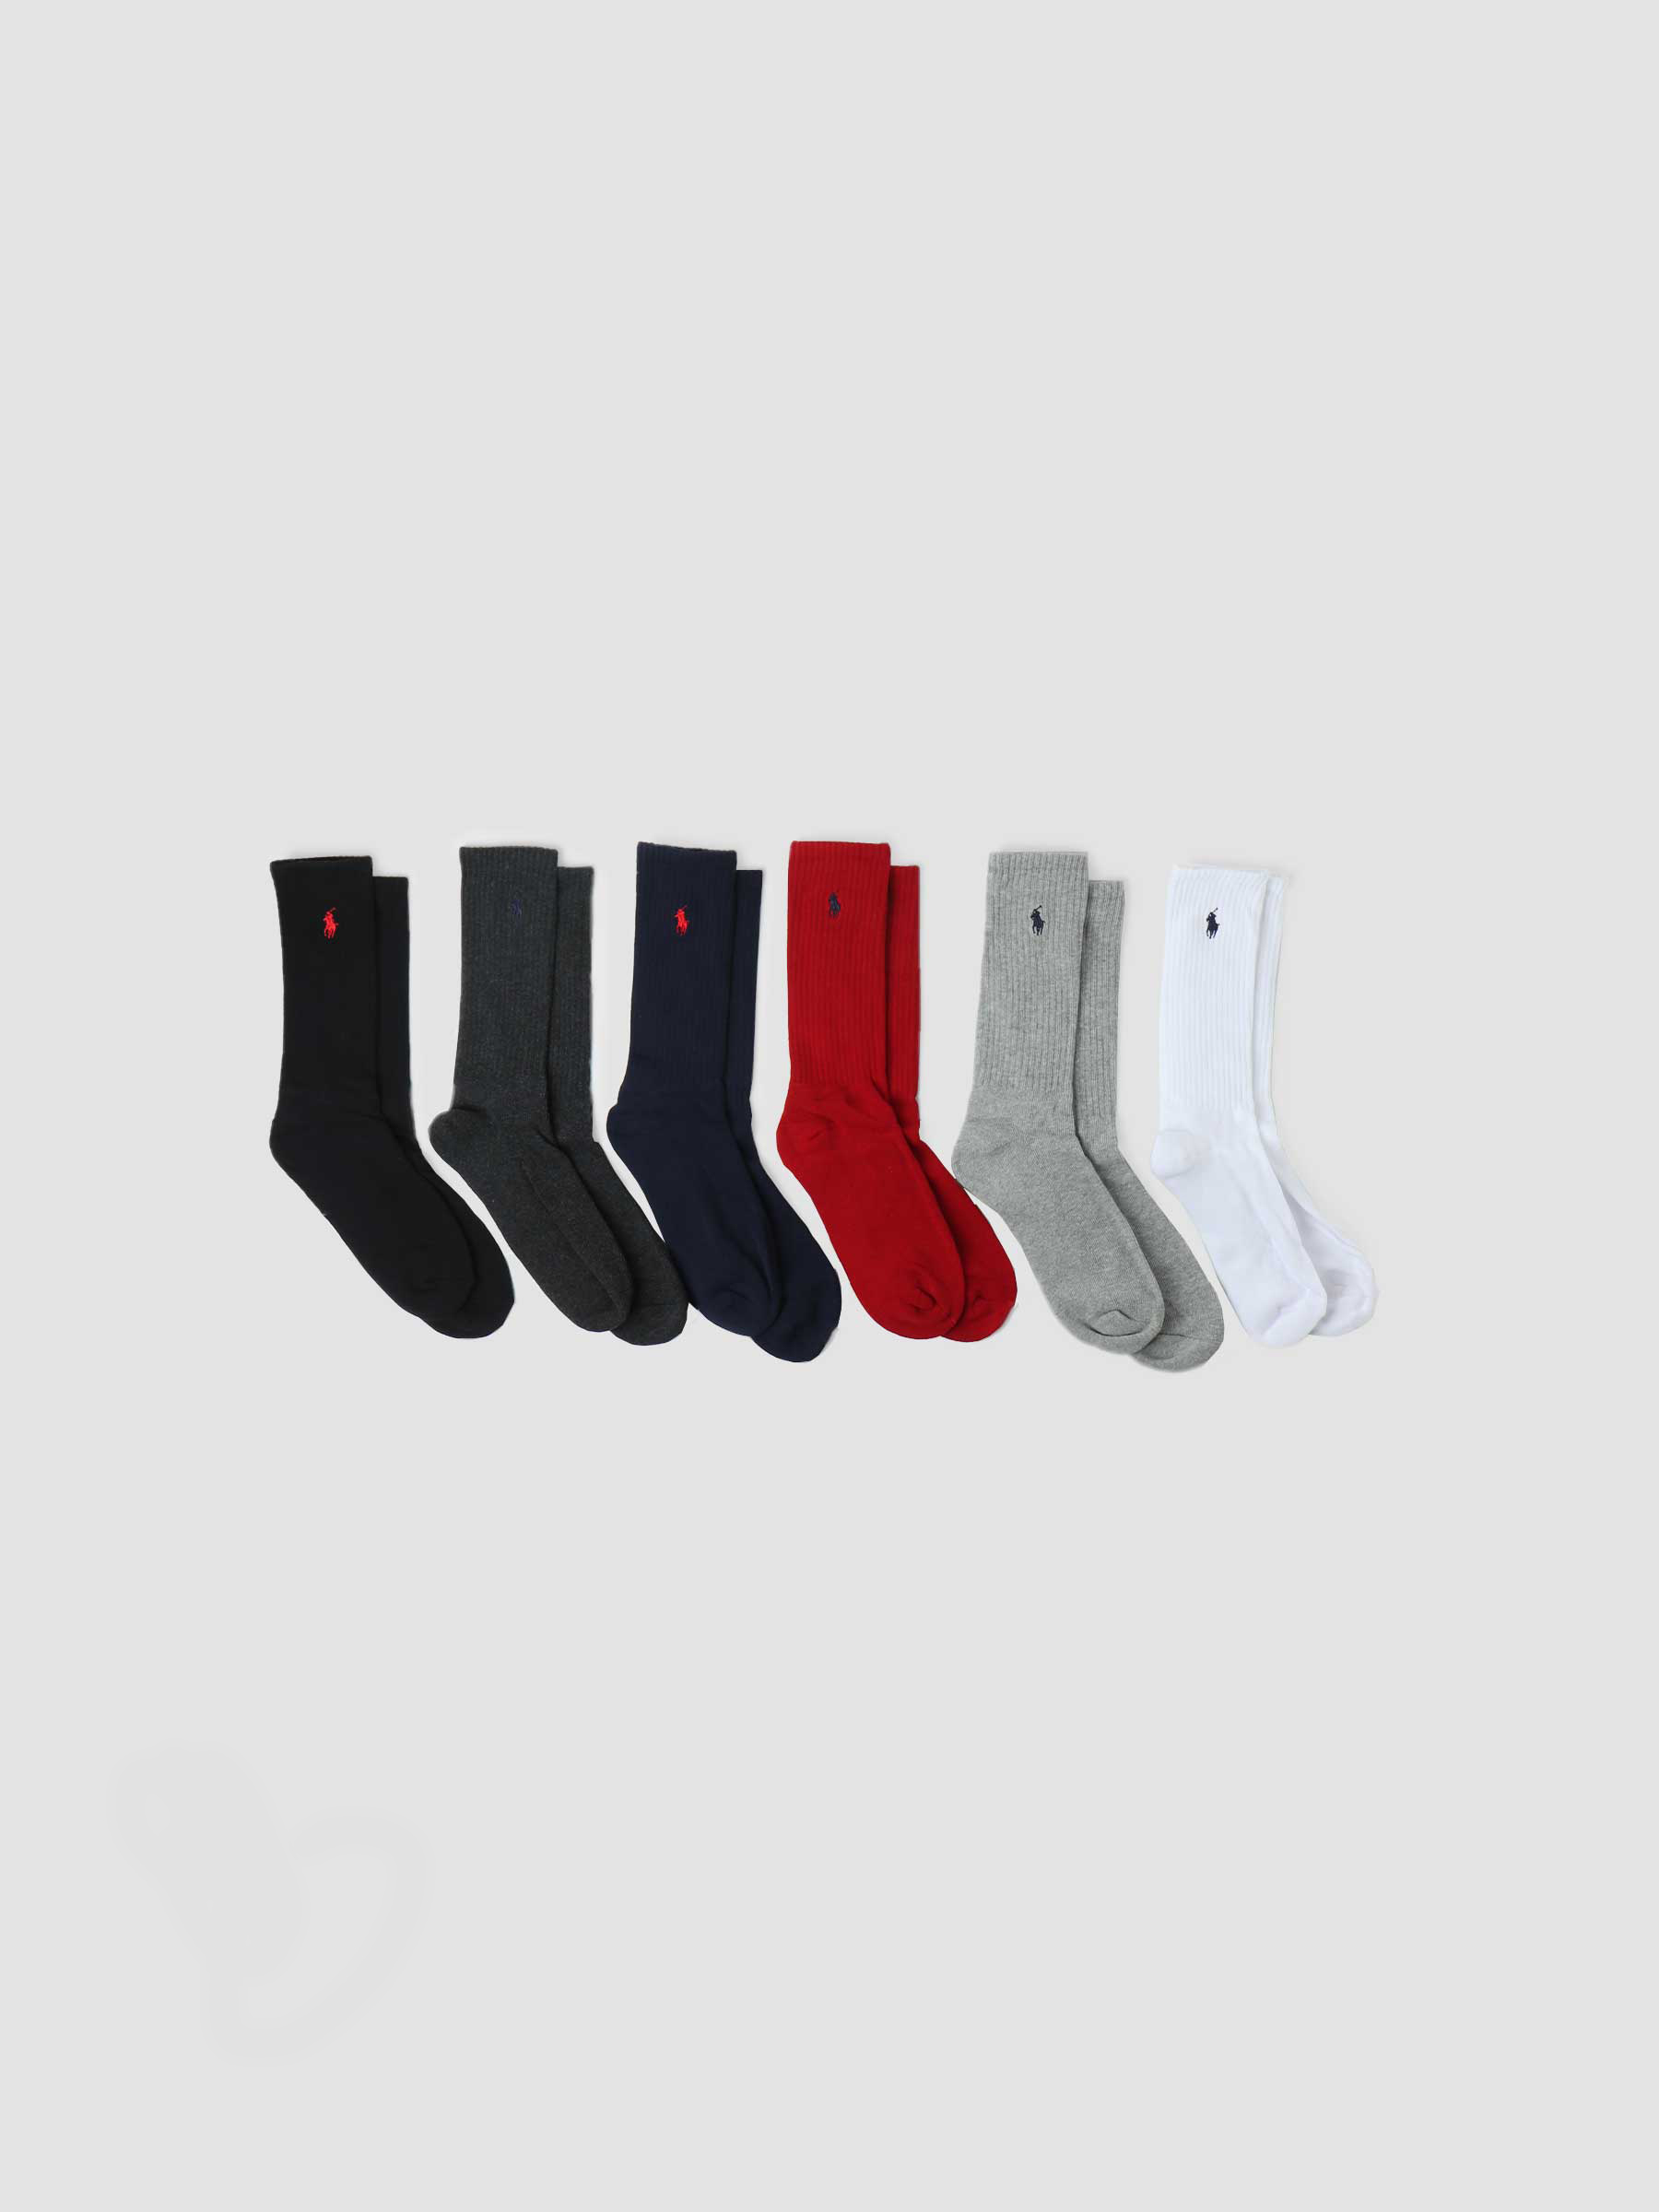 Cotton Crew 6 Pack Blk Red Nvy Char Hthr White 449824809003